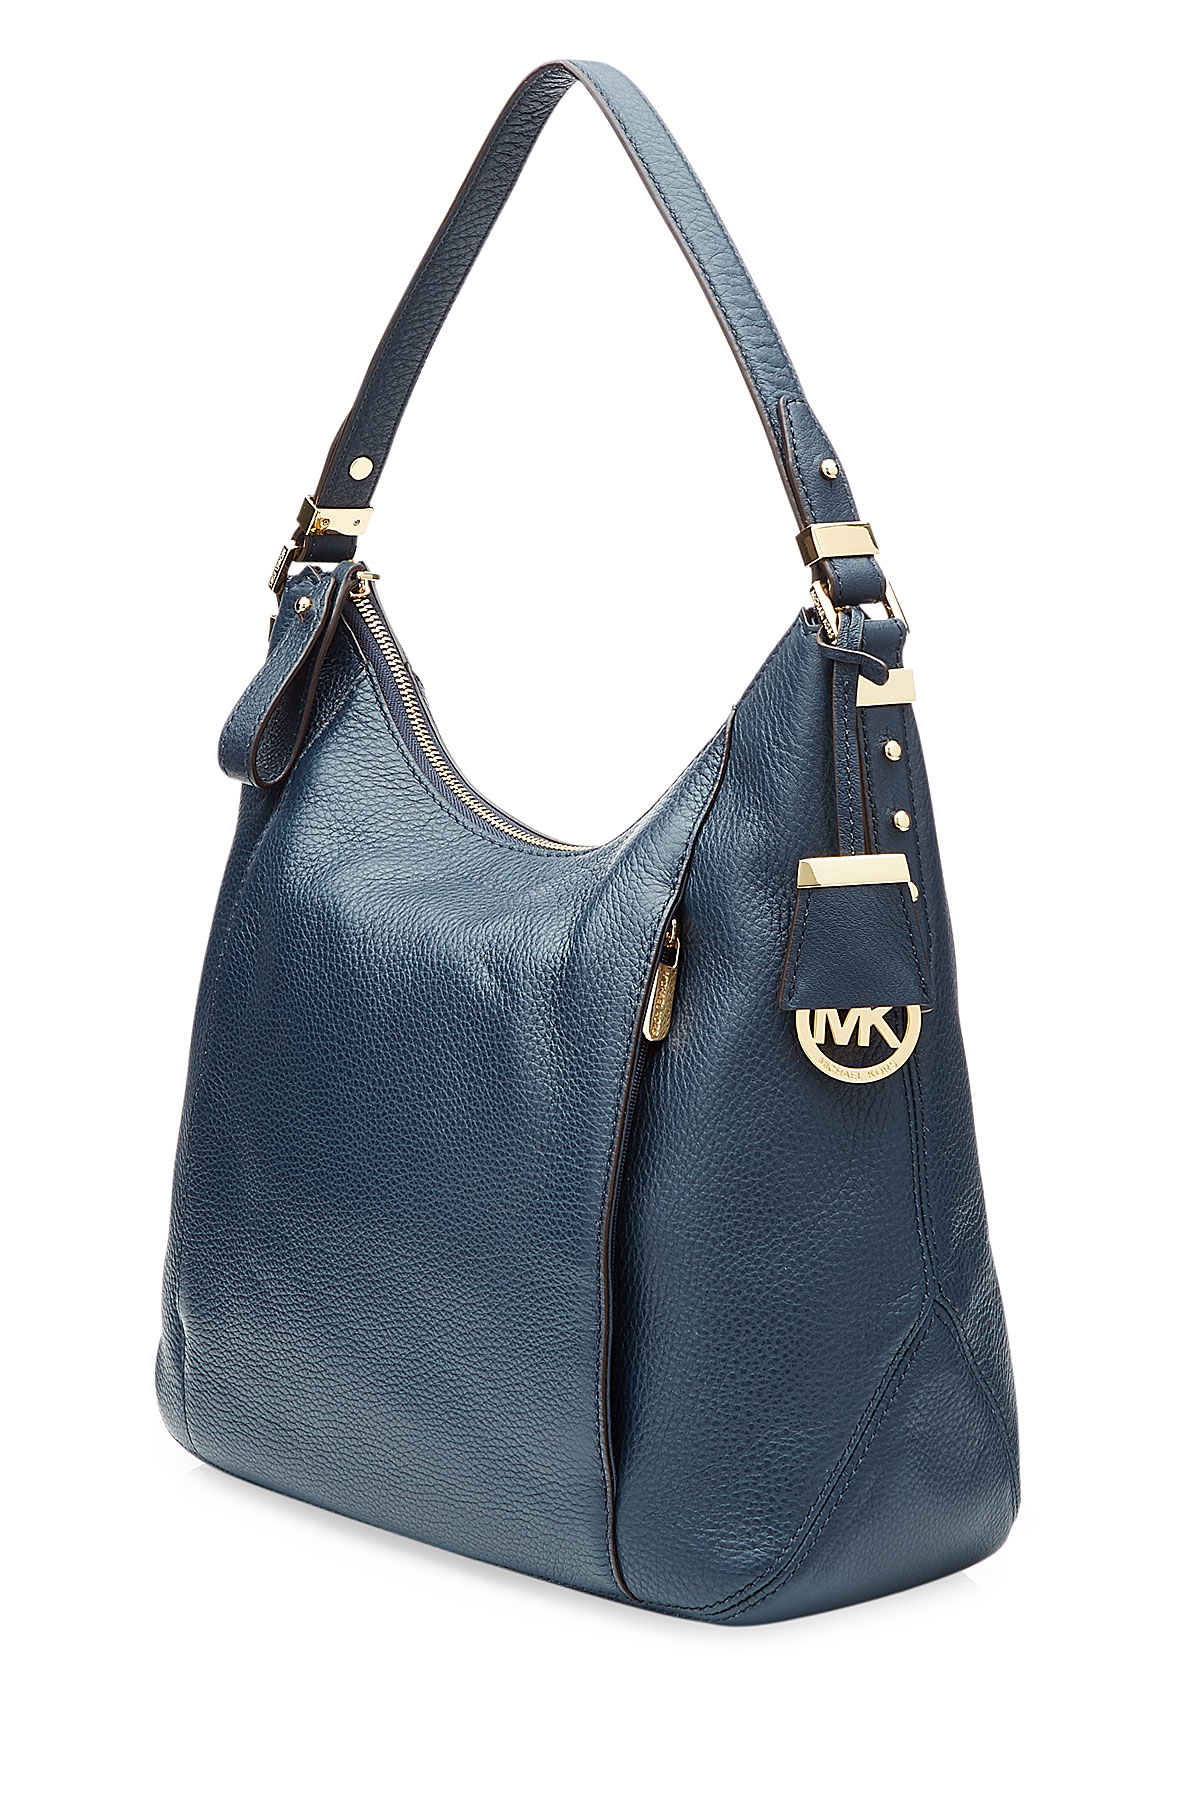 michael michael kors leather bowery large hobo bag blue in blue lyst. Black Bedroom Furniture Sets. Home Design Ideas